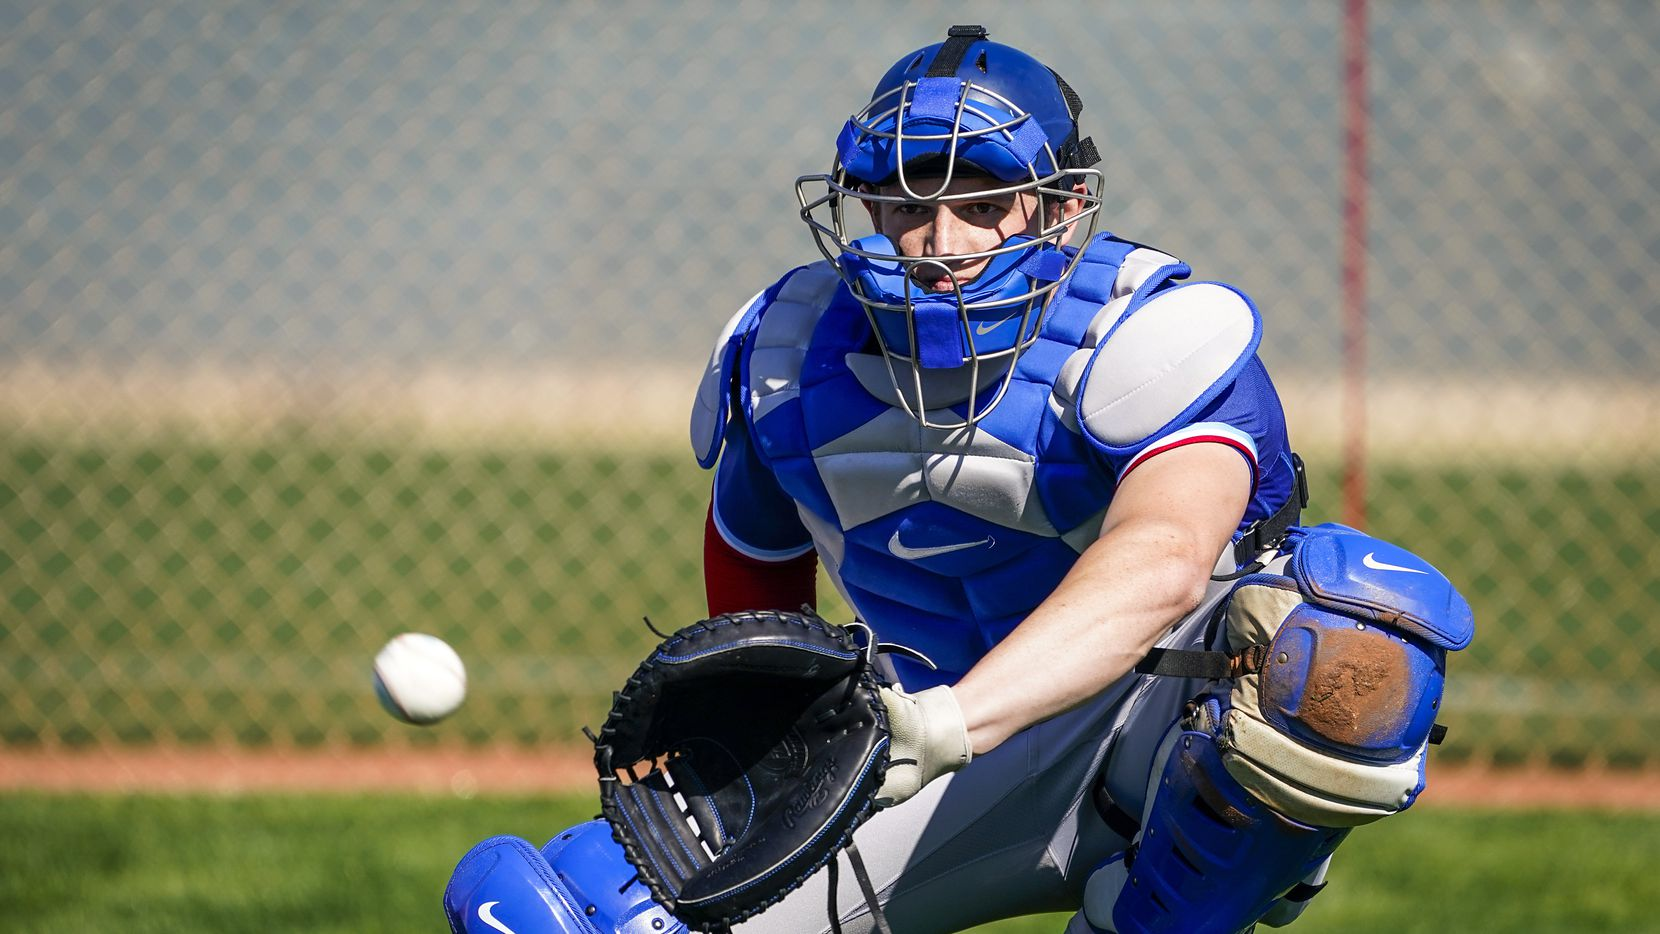 Texas Rangers catcher Sam Huff participates in a drill during a spring training workout at the team's training facility on Saturday, Feb. 15, 2020, in Surprise, Ariz.